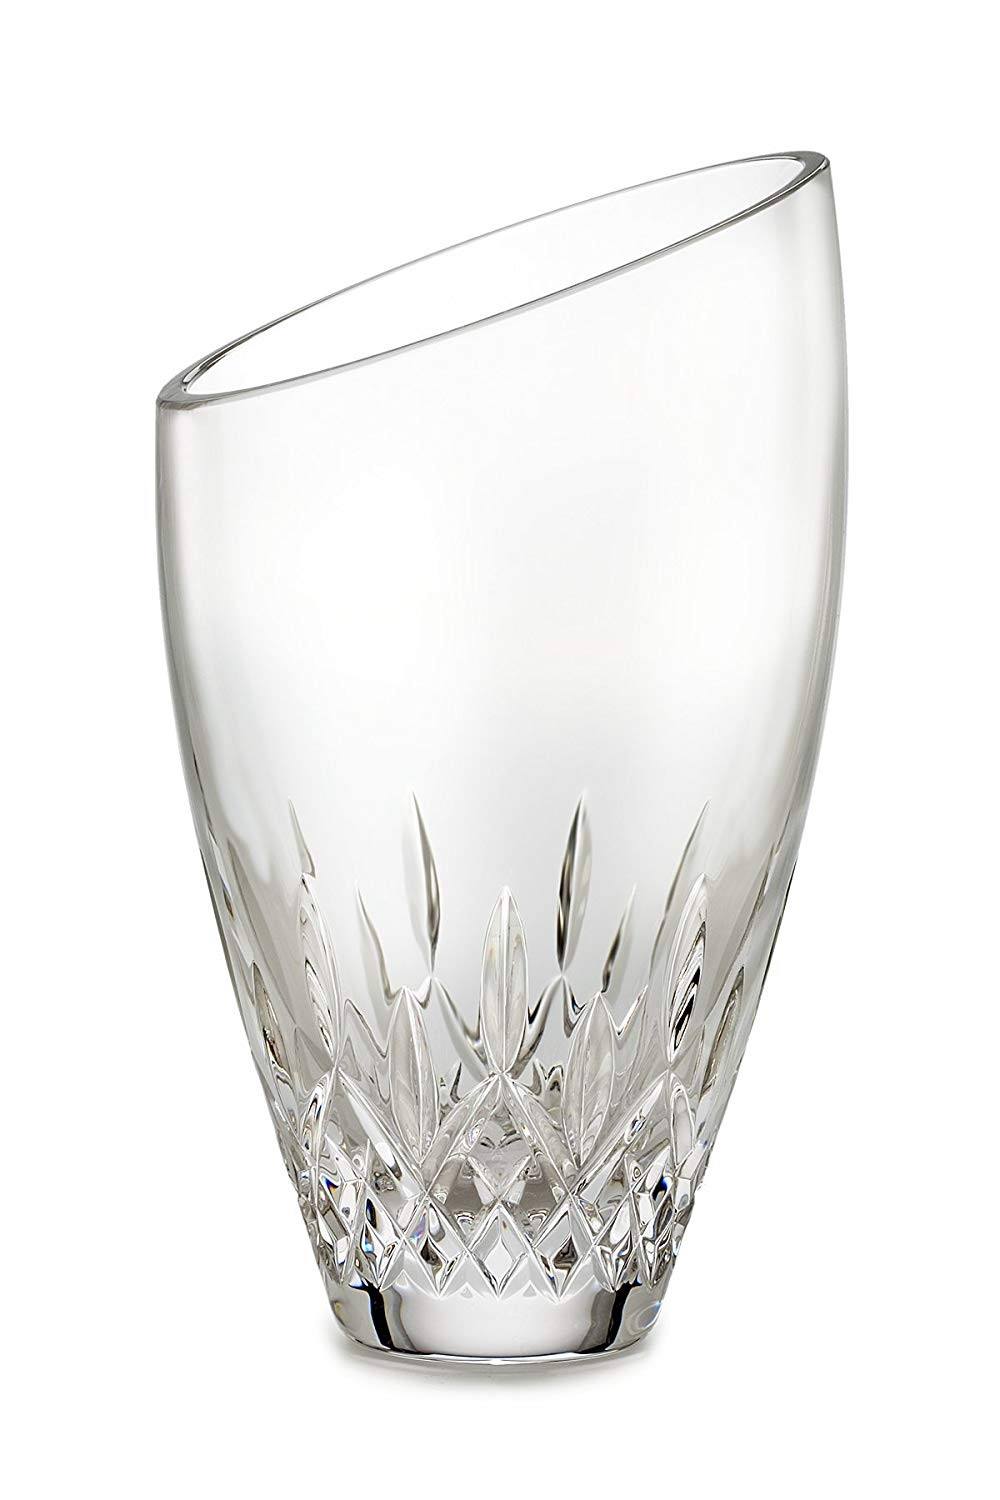 waterford marquis markham vase of amazon com waterford crystal lismore essence 9 inch angular vase intended for amazon com waterford crystal lismore essence 9 inch angular vase home kitchen